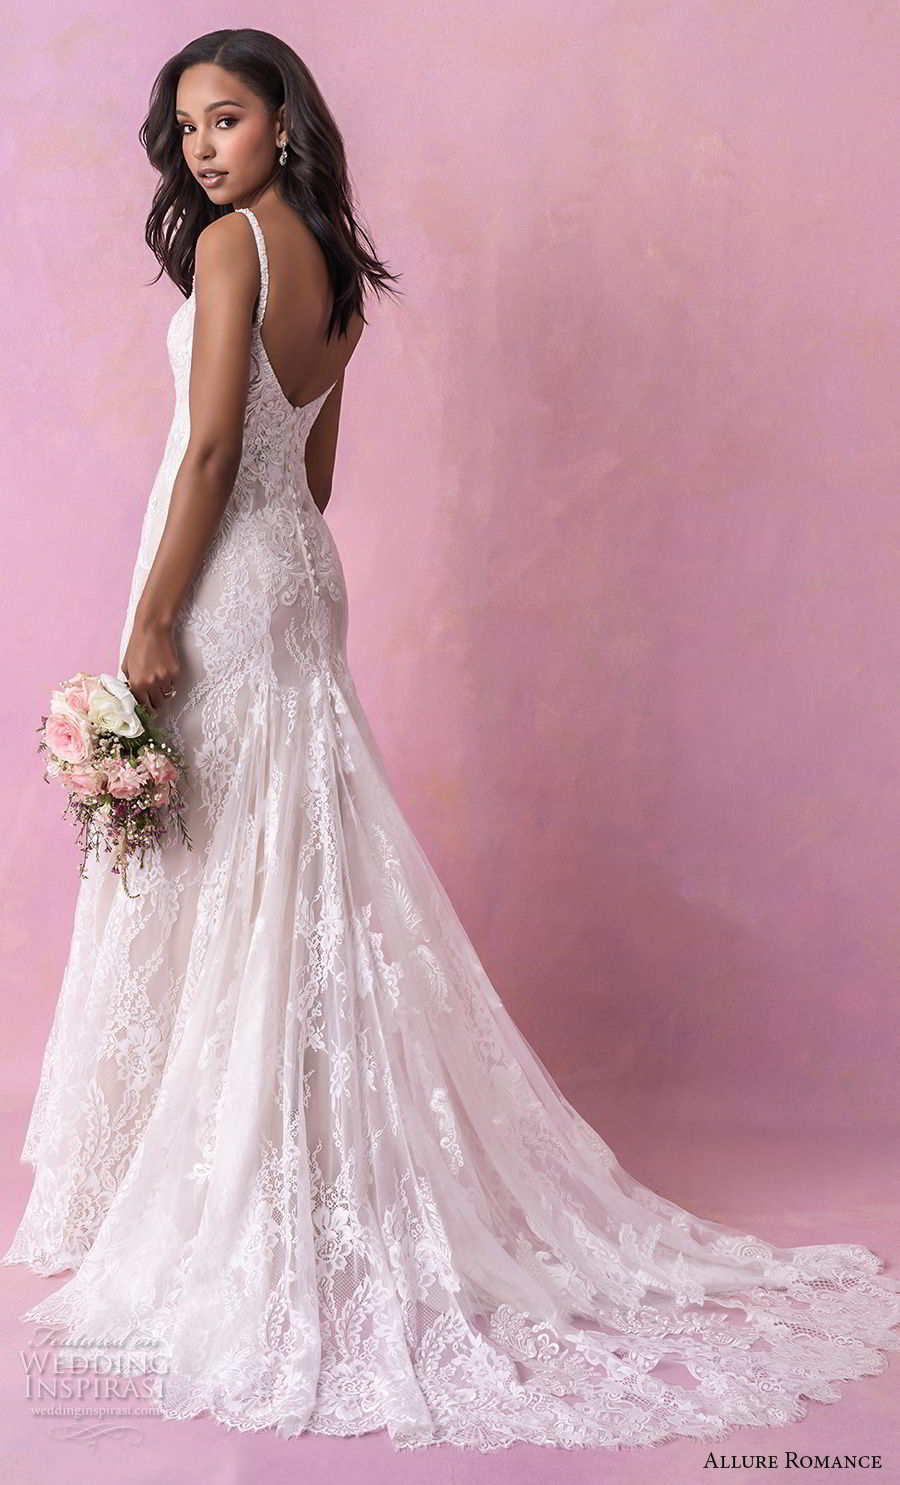 allure romance fall 2018 bridal thin strap v neck full embellishment elegant sheath wedding dress open back chapel train (7) bv